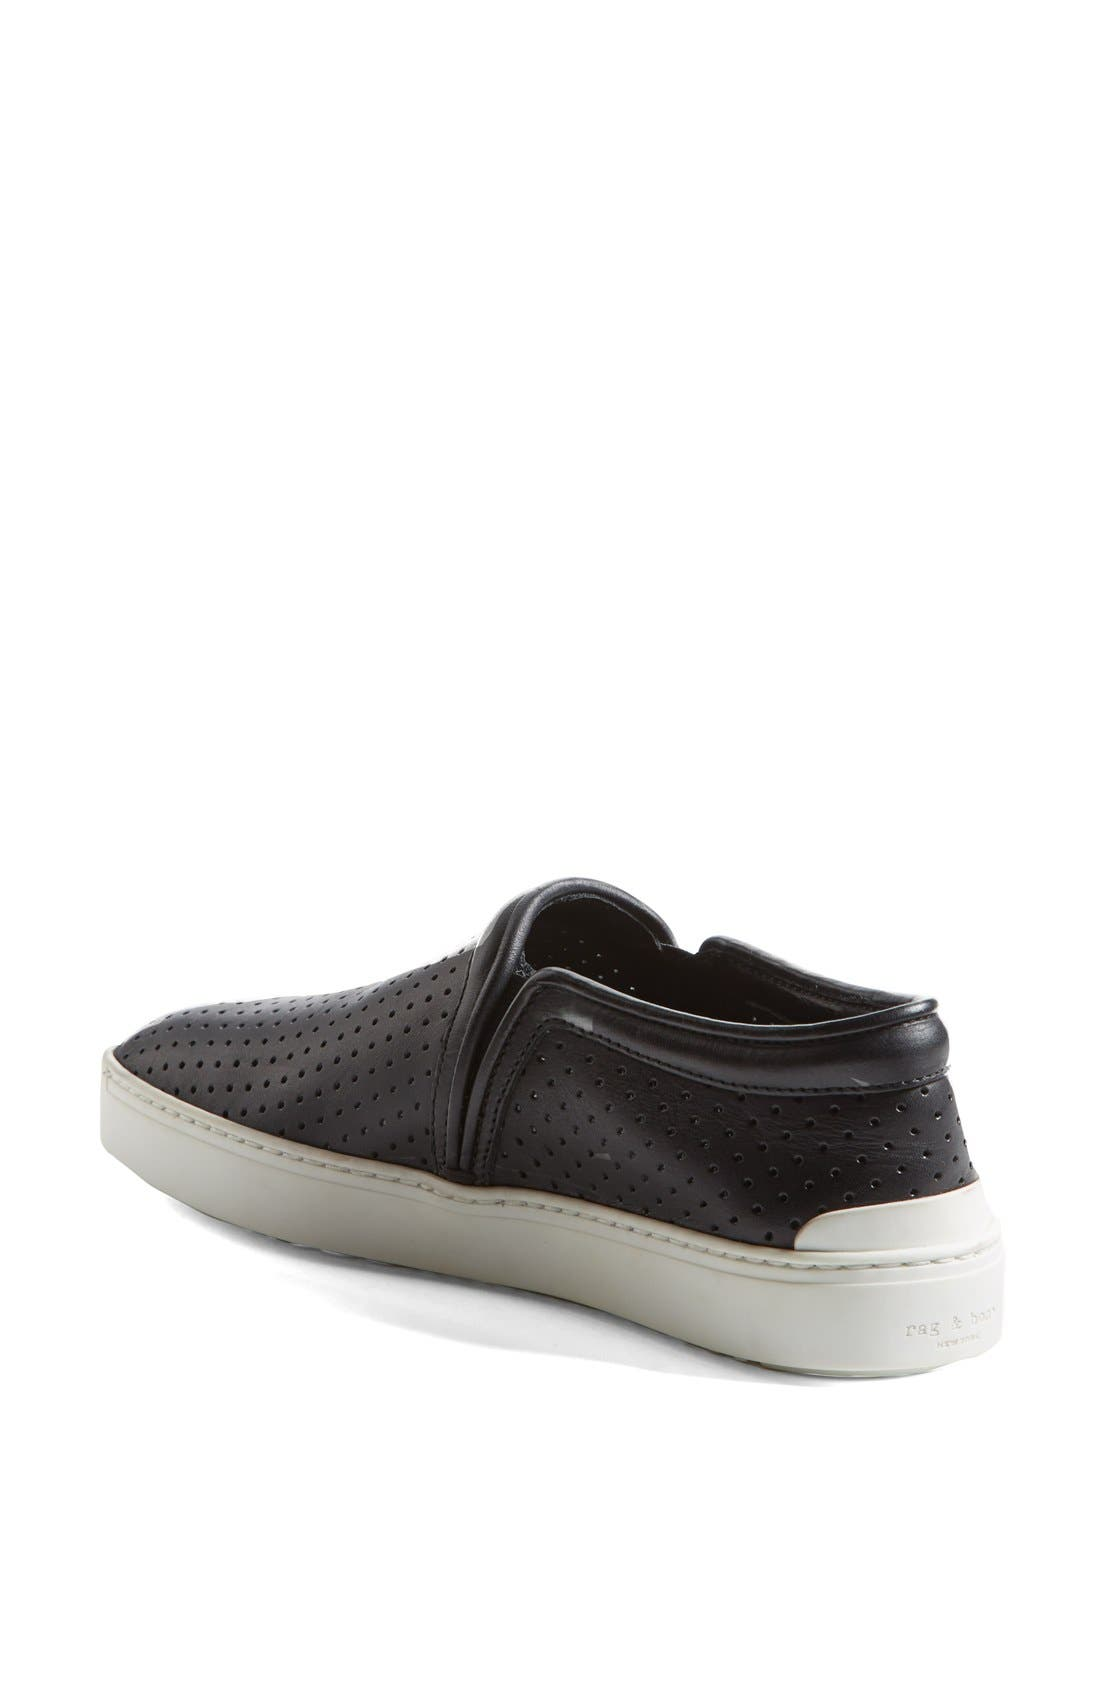 'Kent' Perforated Leather Slip-On,                             Alternate thumbnail 3, color,                             001